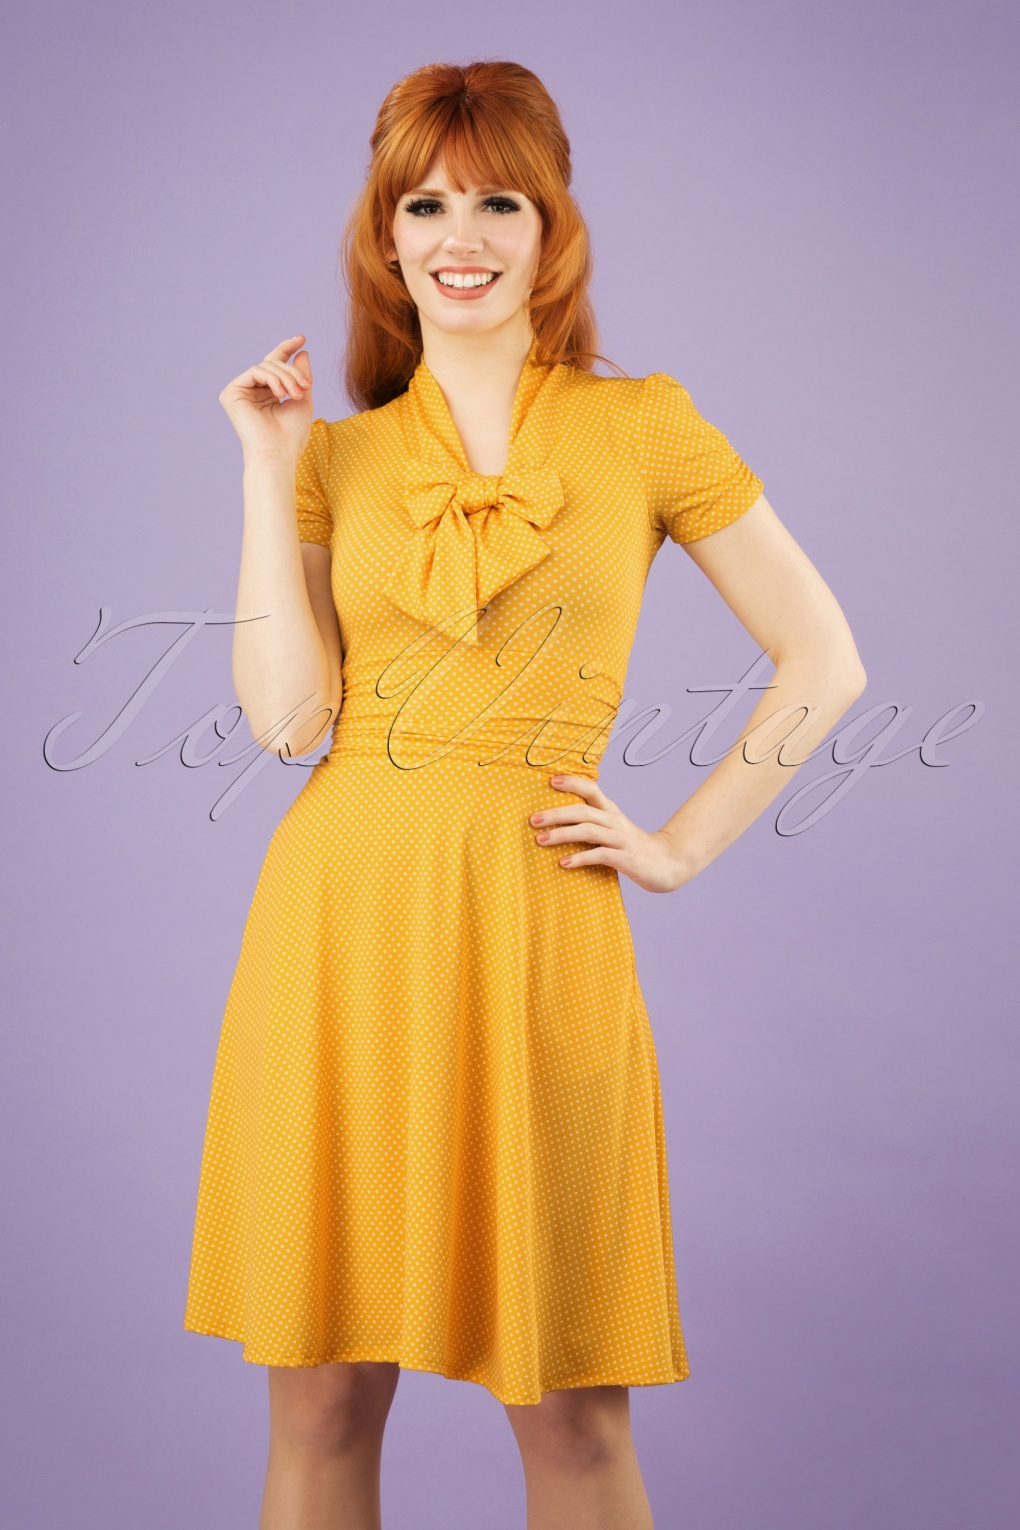 Swing Dance Clothing You Can Dance In 50s Debra Pin Dot Swing Dress in Yellow £67.30 AT vintagedancer.com